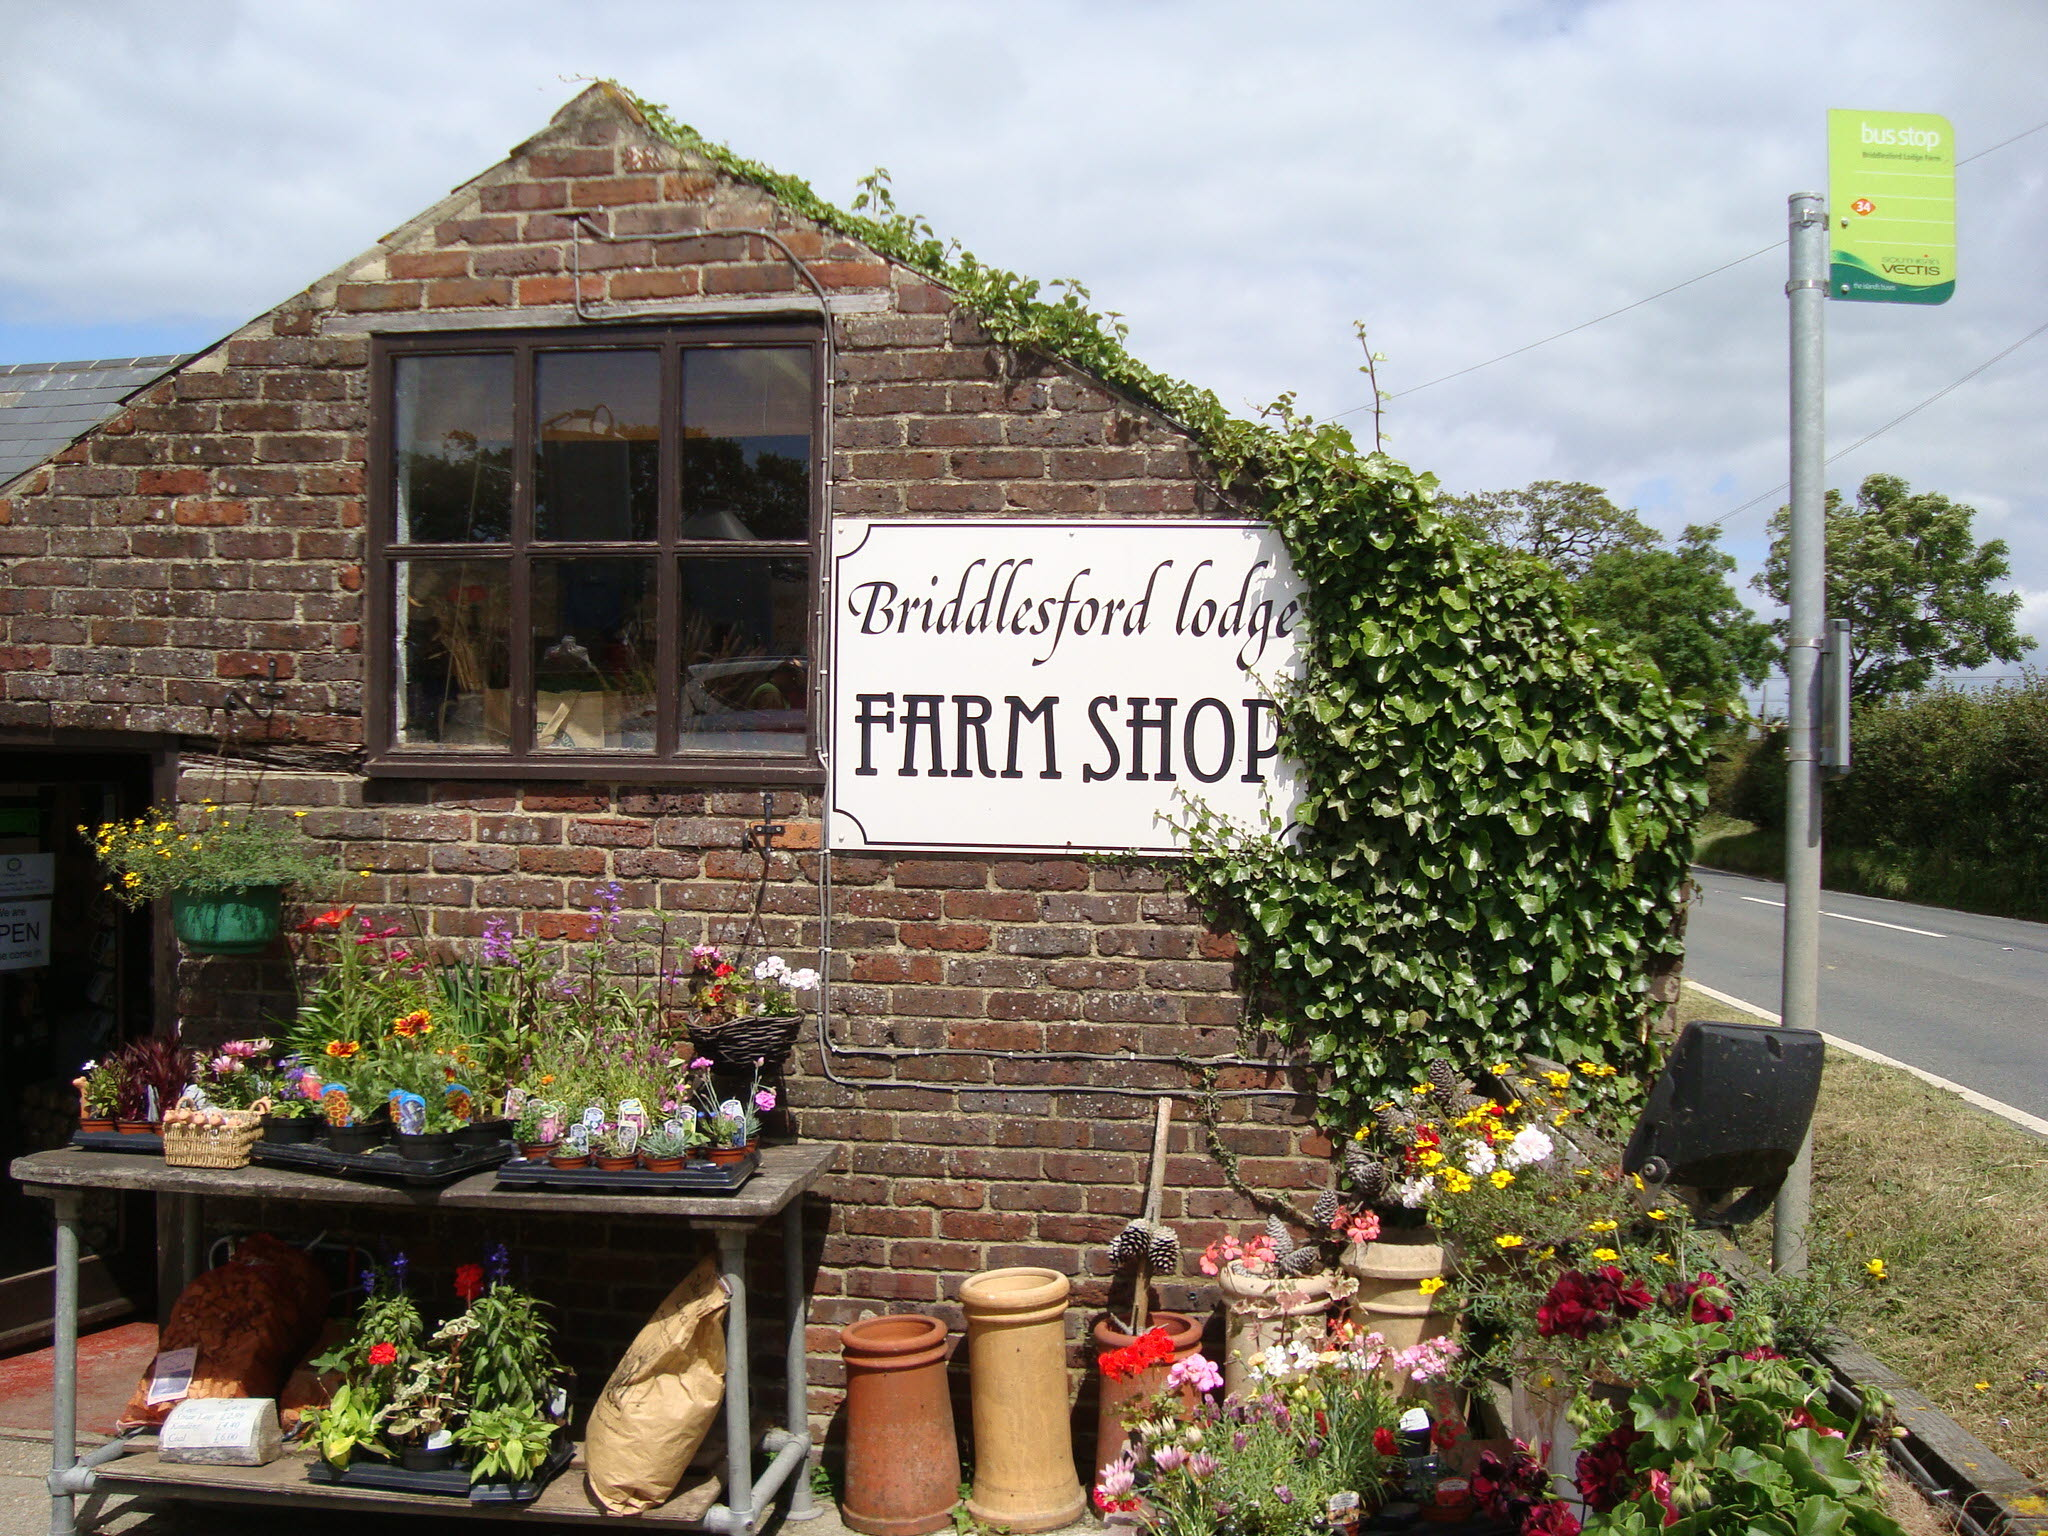 Briddlesford Farm Shop